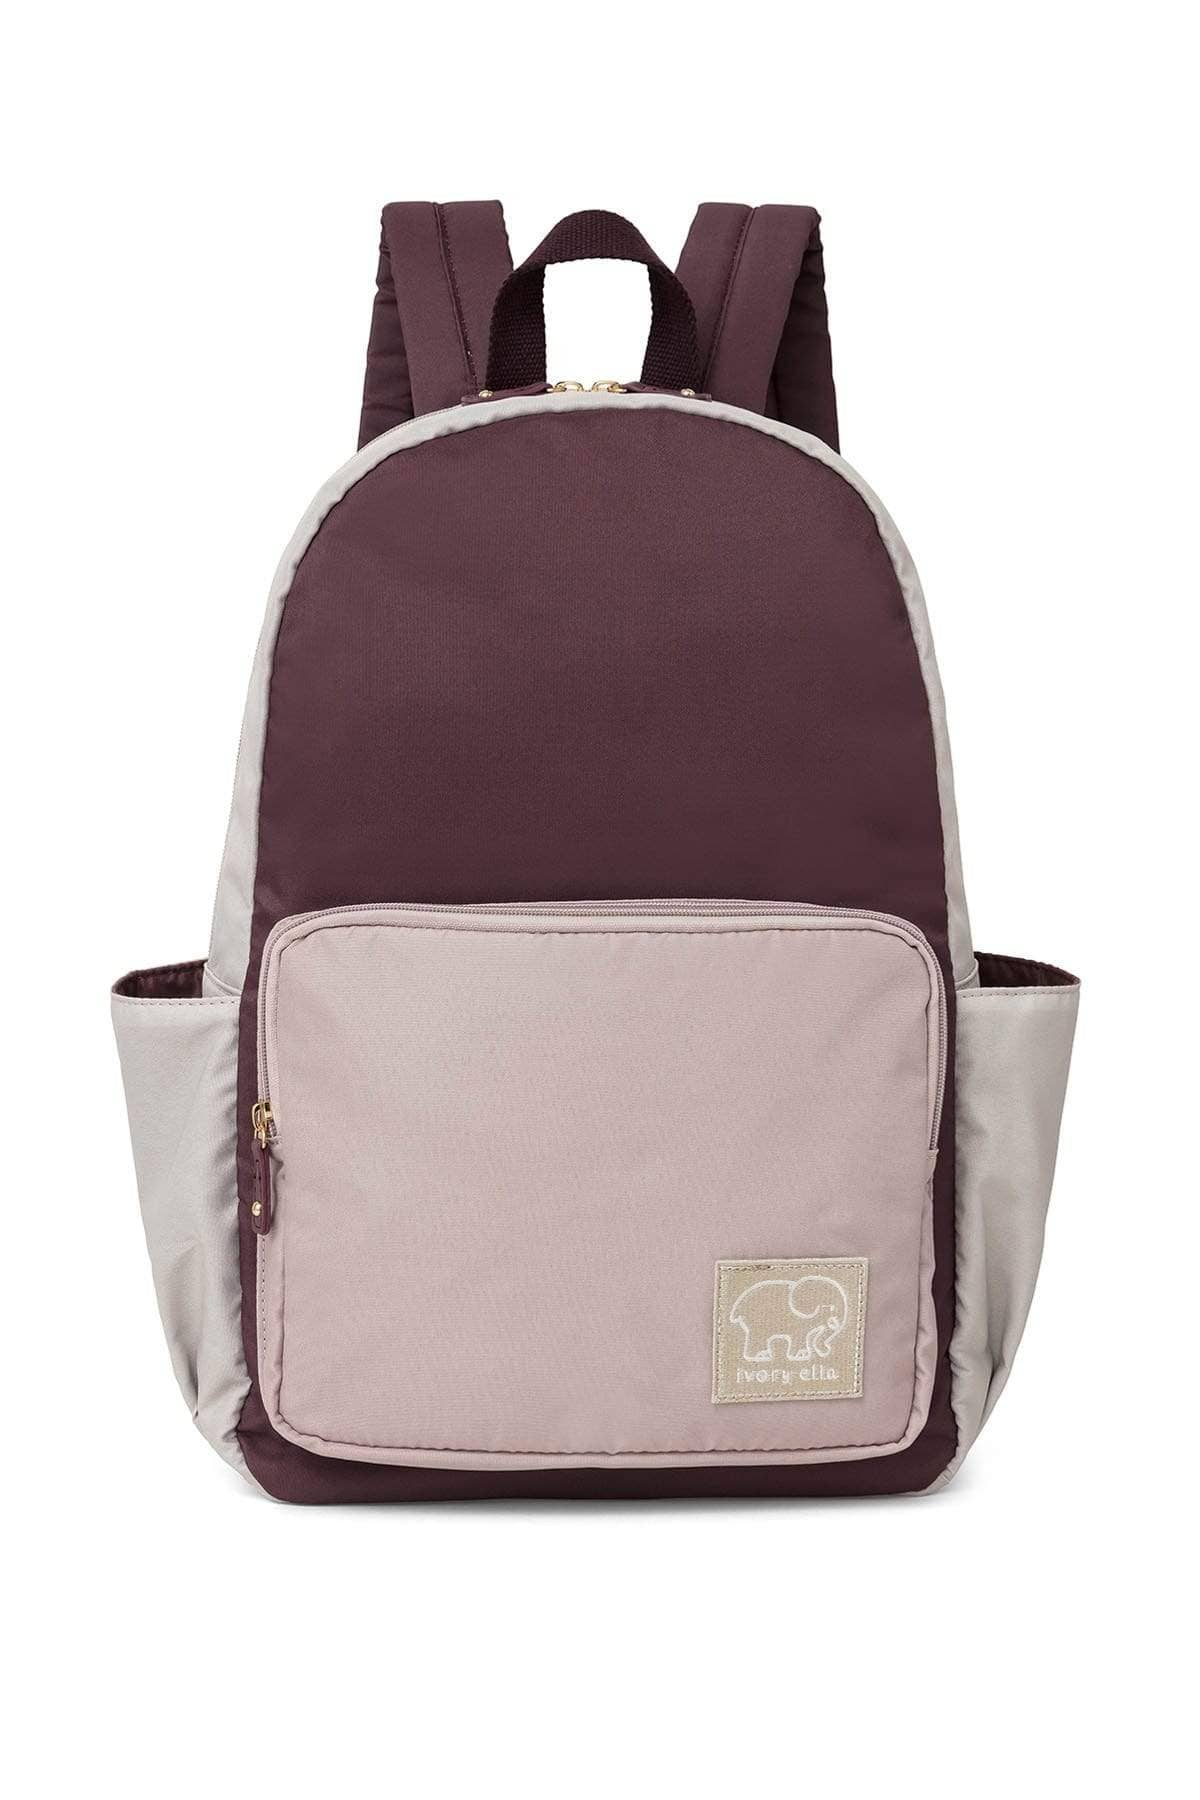 Eggplant Colorblock Backpack - Ivory Ella - Accessories